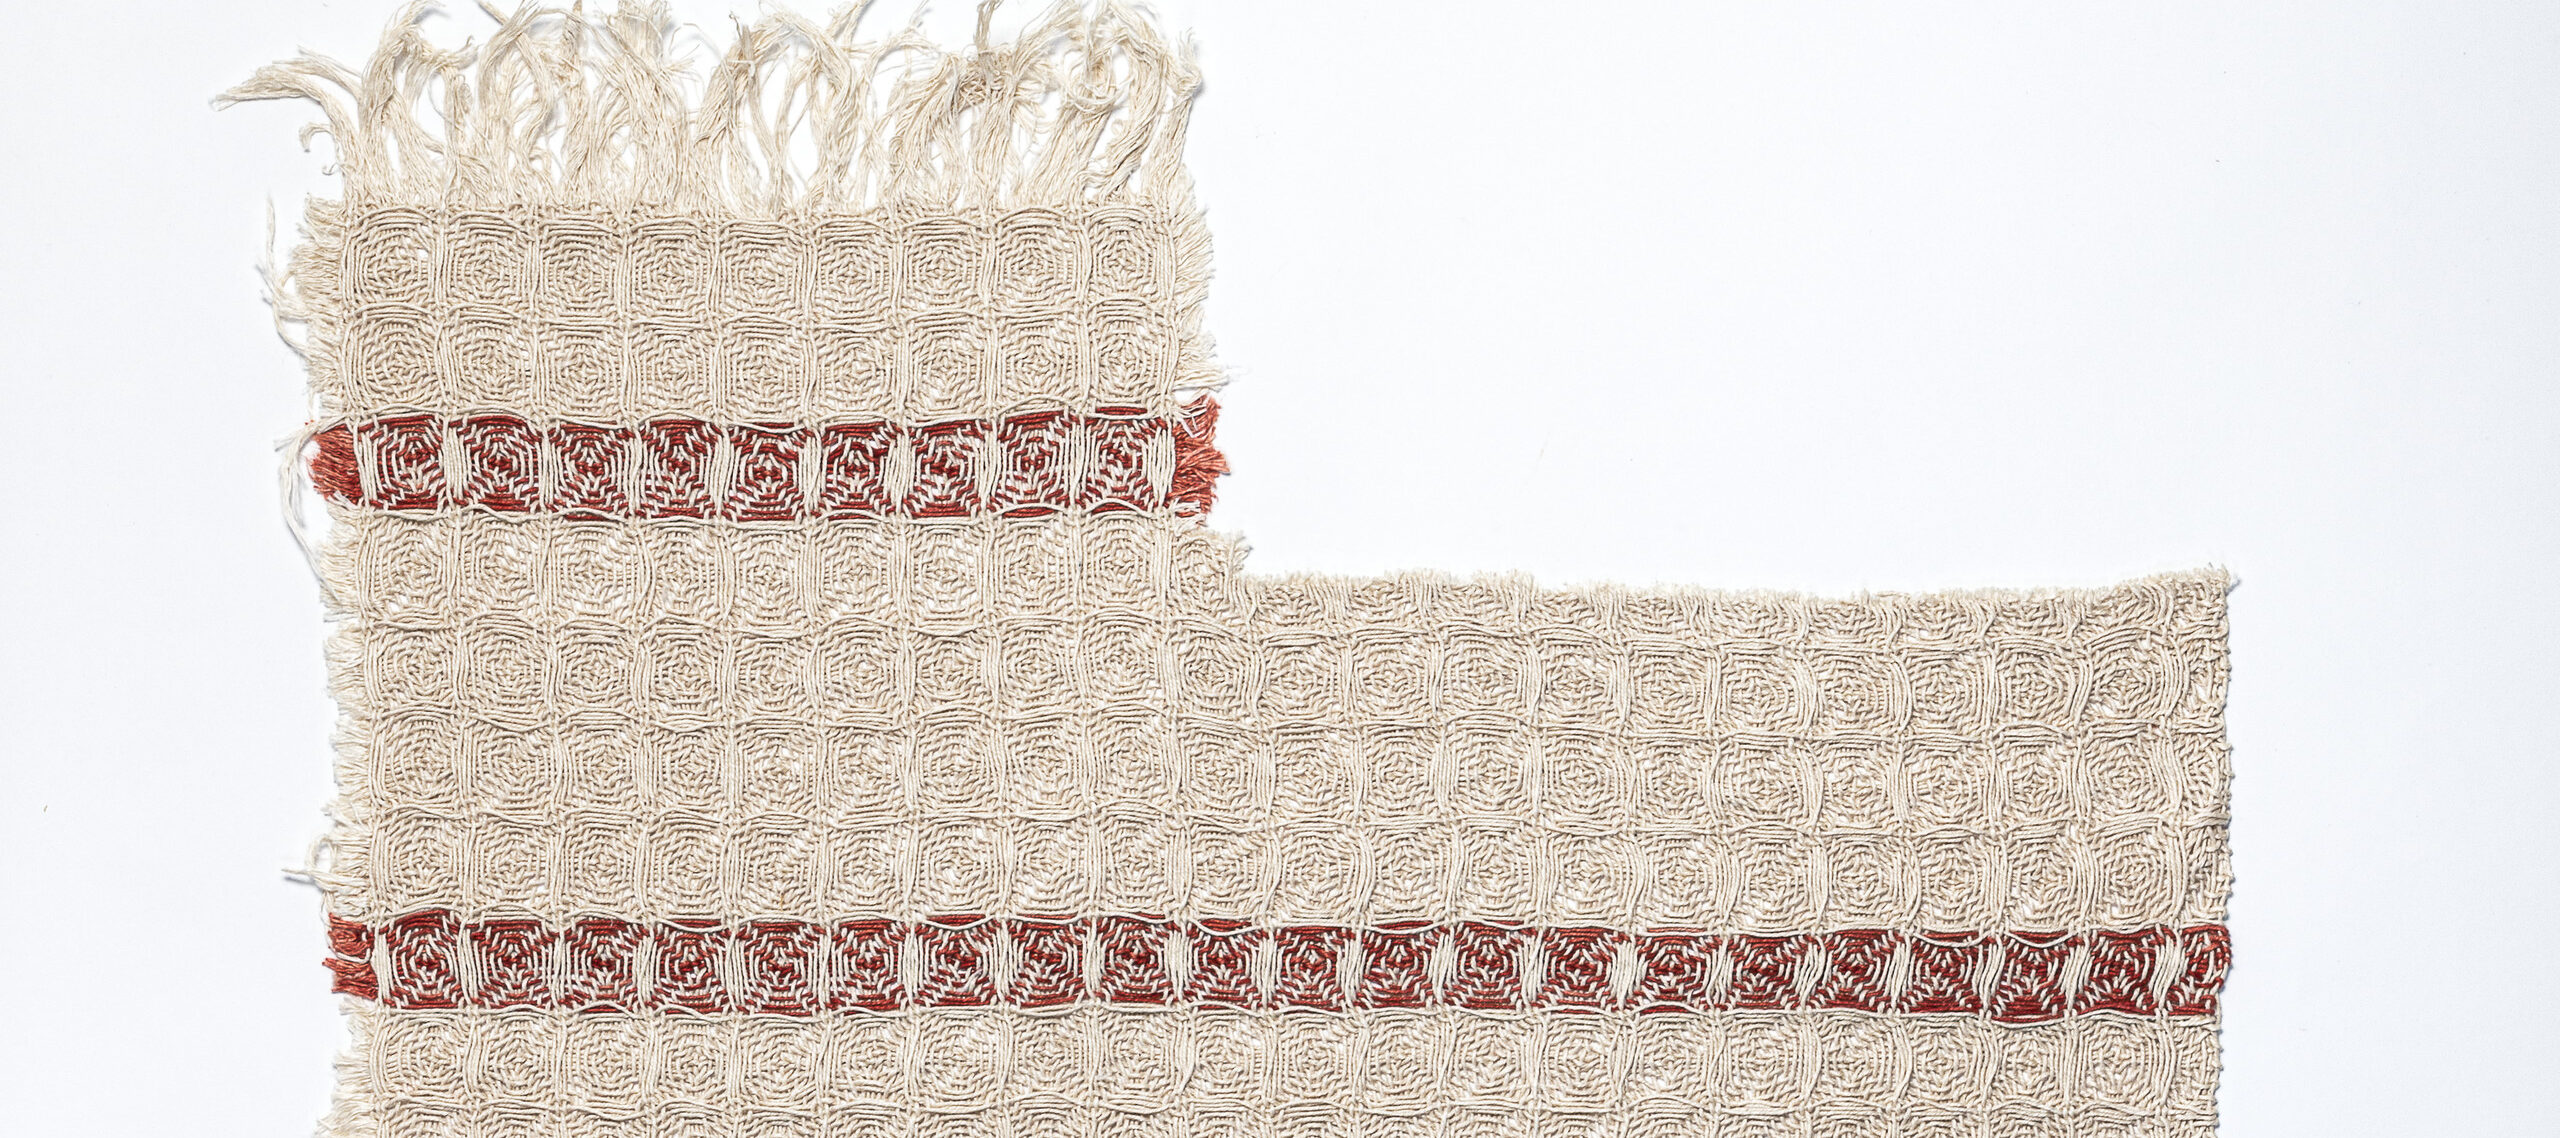 A white, linen dishtowel with three equidistantly parallel horizontal red stripes, frayed edges, and a missing rectangular section in the top right corner. The bottom has been mostly untangled and long, frayed threads hang loosely.